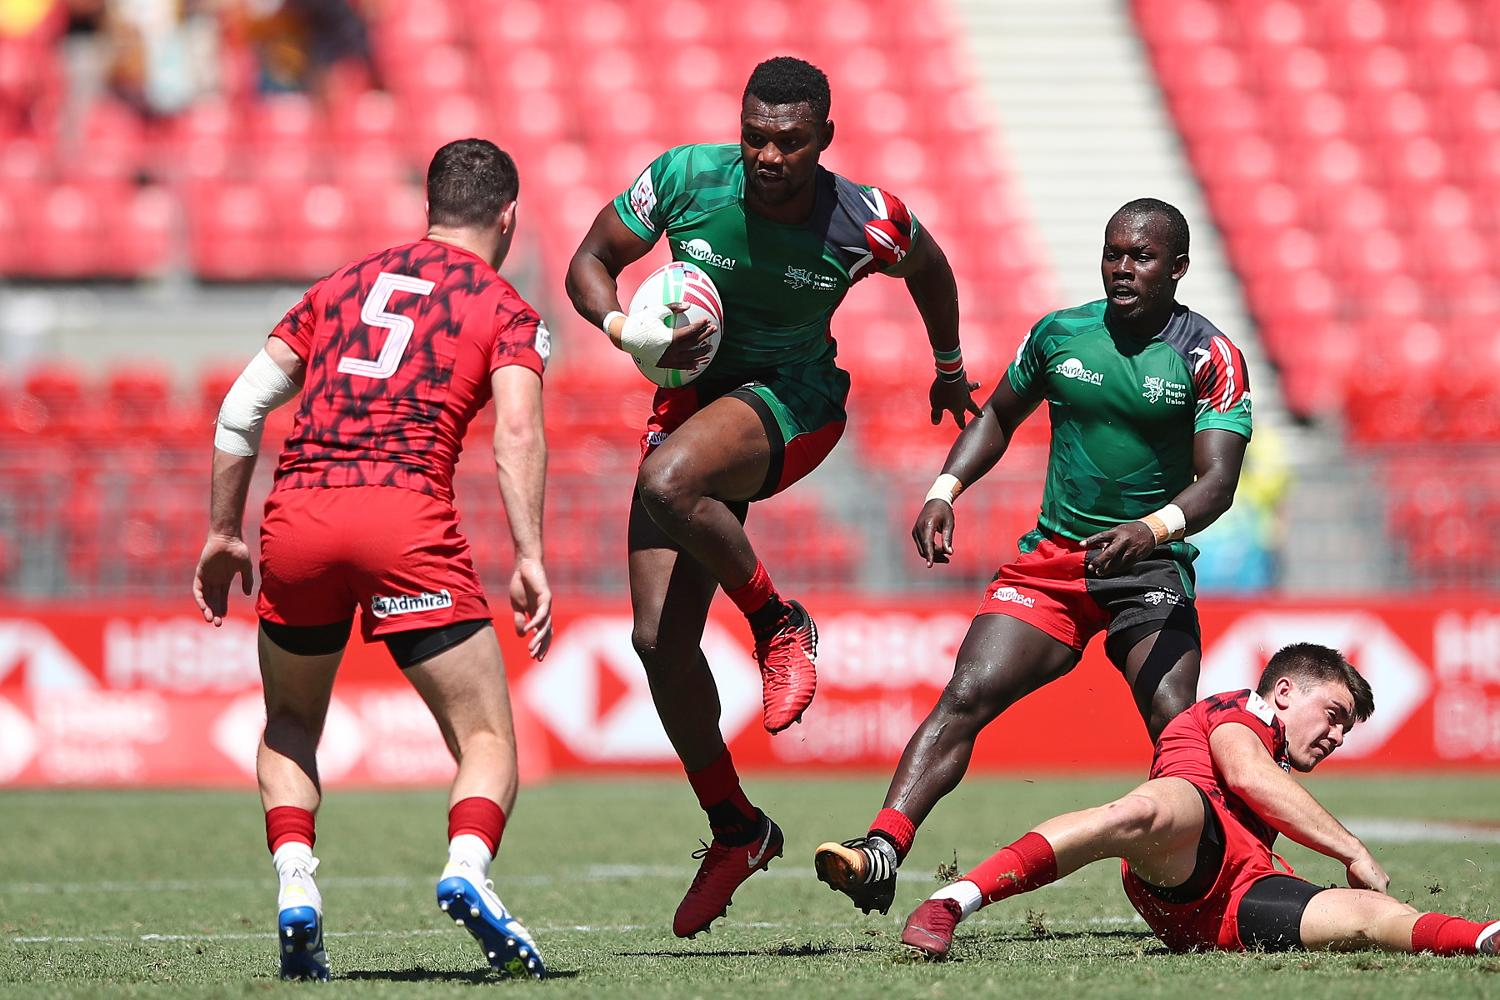 Kenya name squad for the Rugby Sevens Olympic qualifiers - Sports Leo